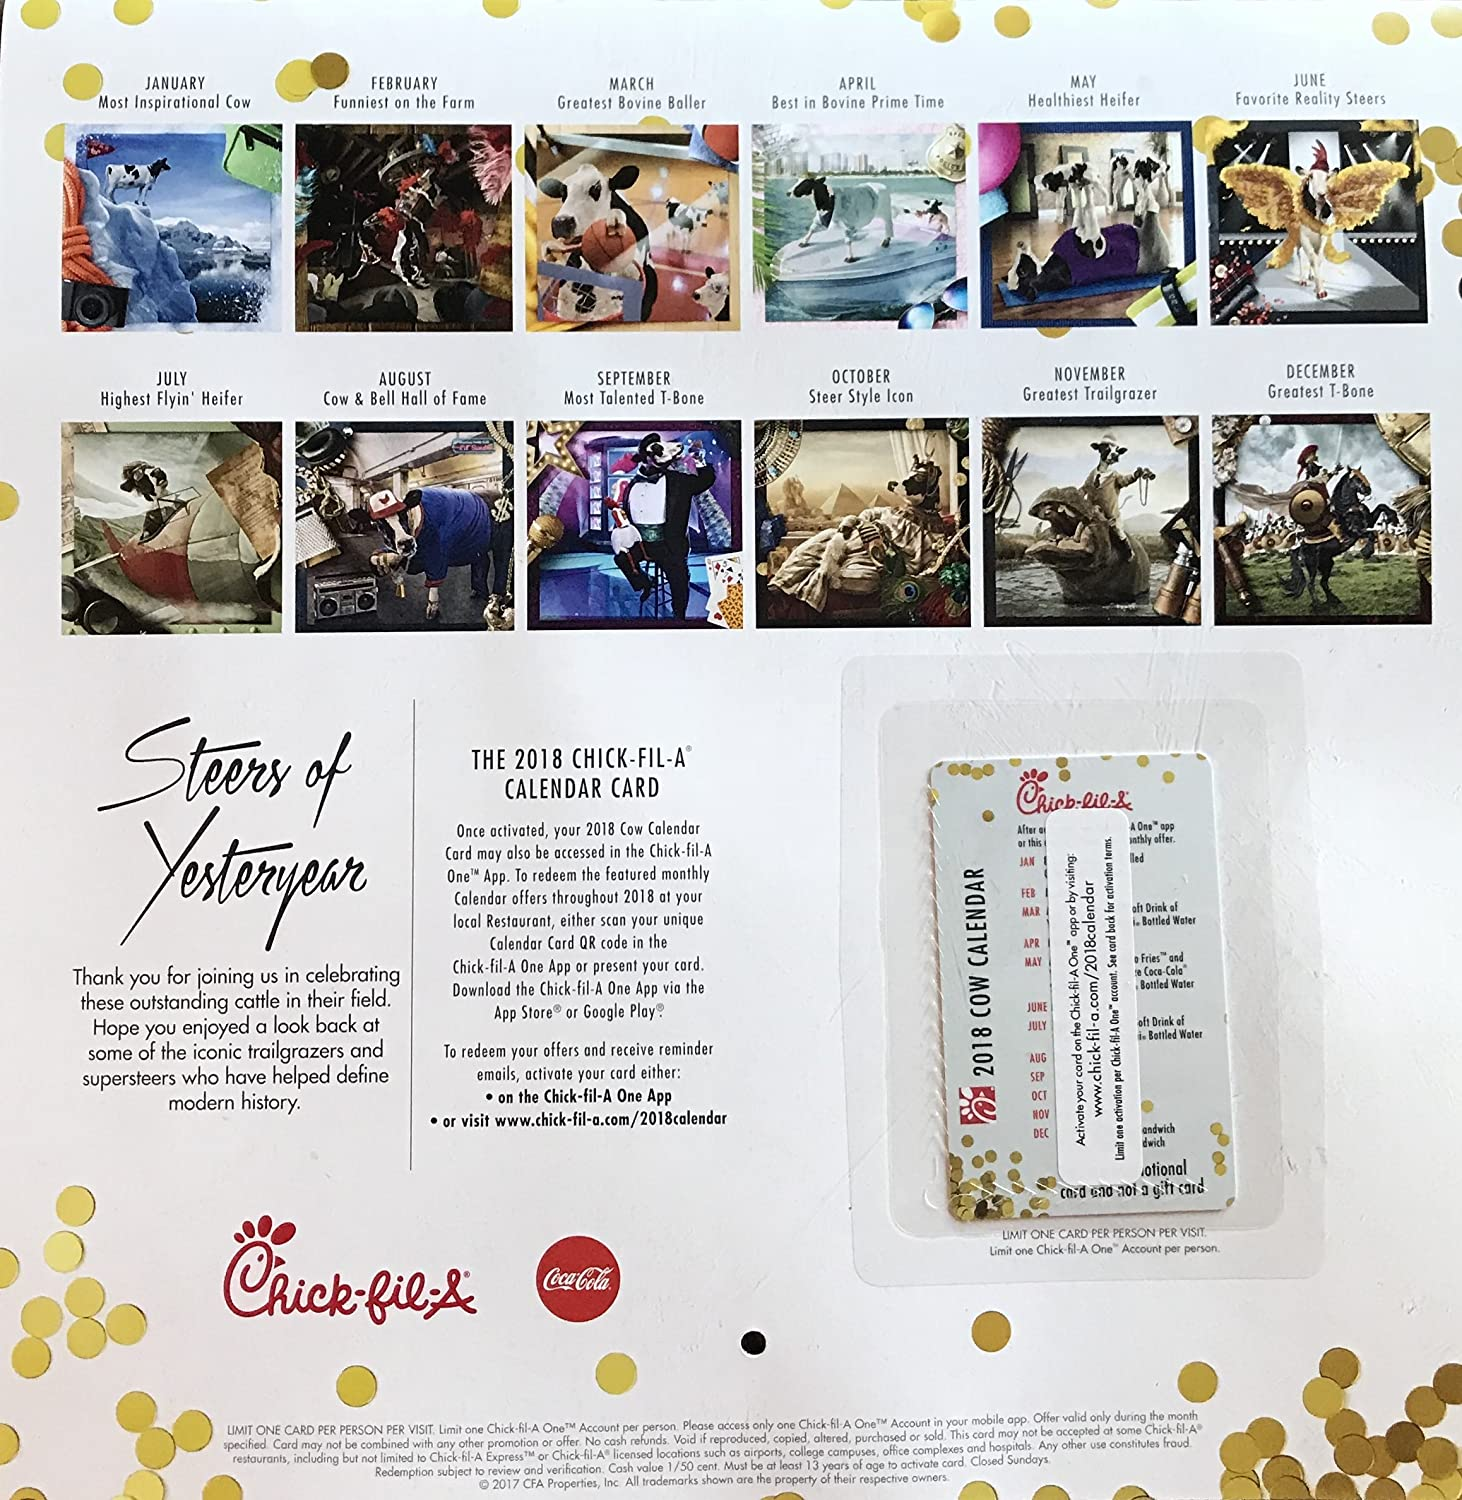 chick fil a calendar june 2019